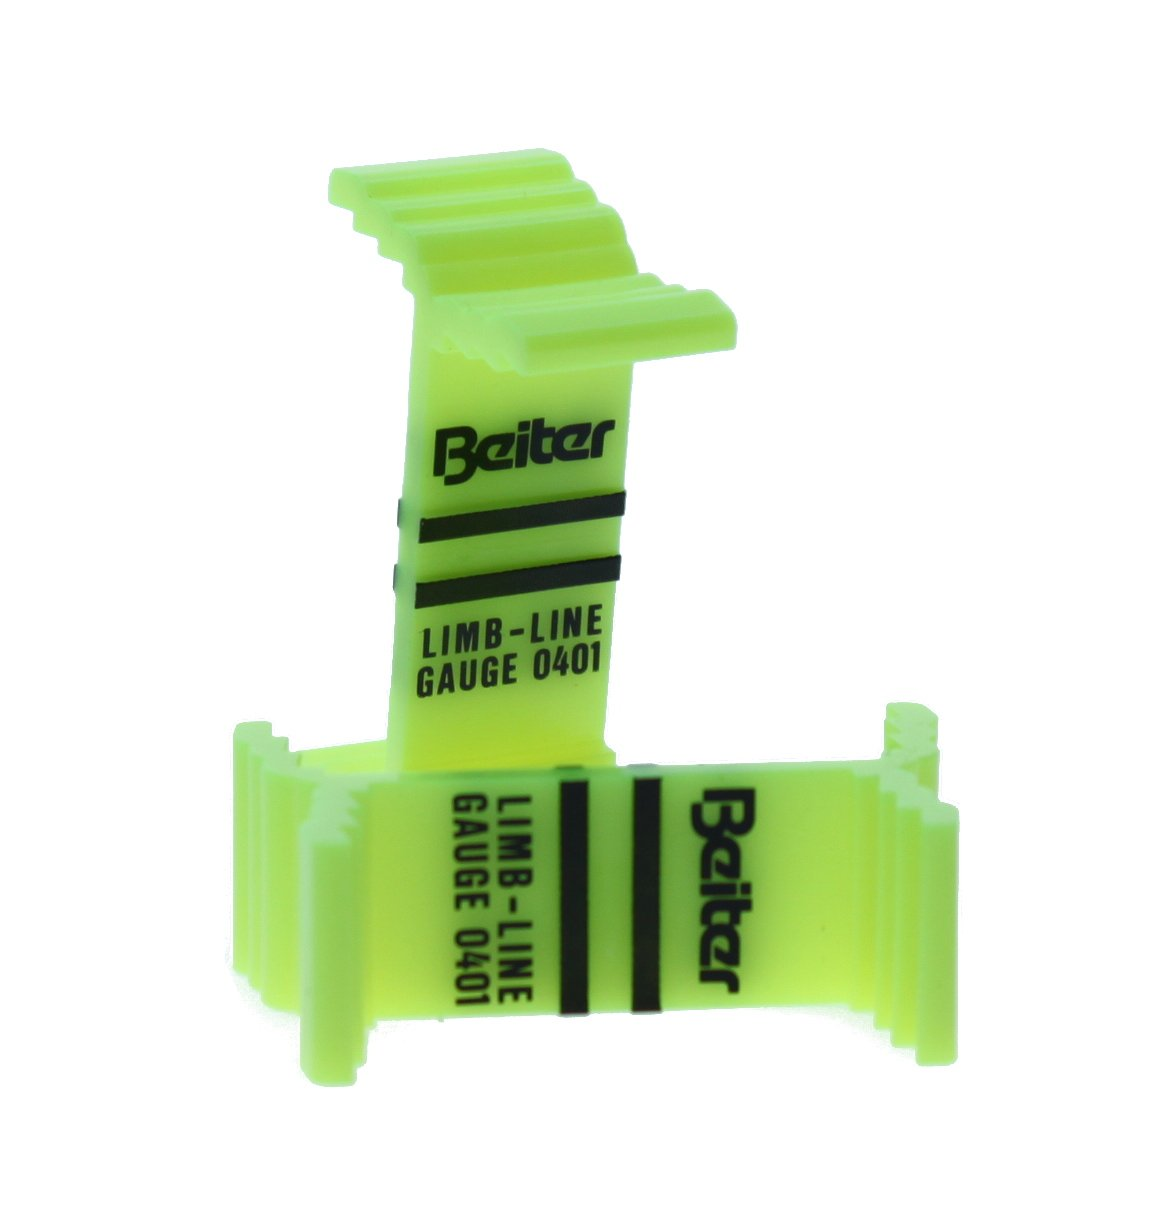 Beiter Limb Line Guage for compound